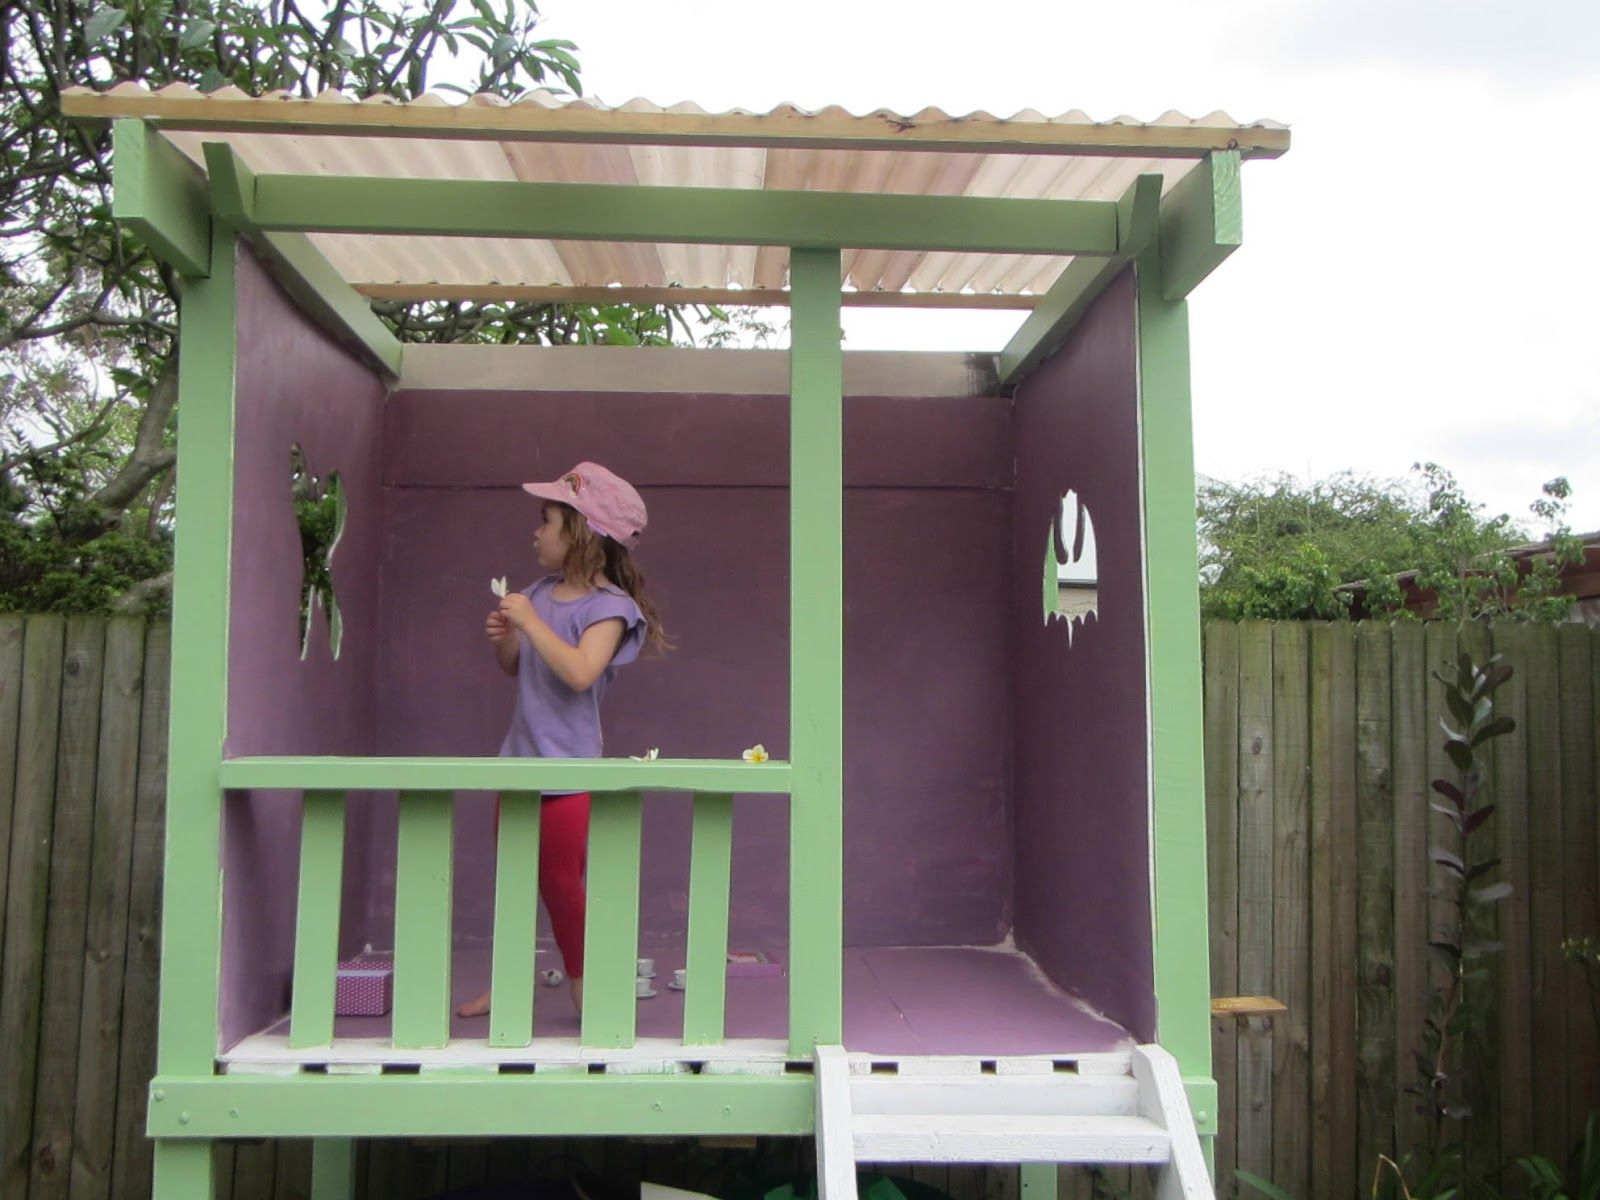 House Made From Pallets Ideas For A Cubby House Using Pallets Google Search Eliza